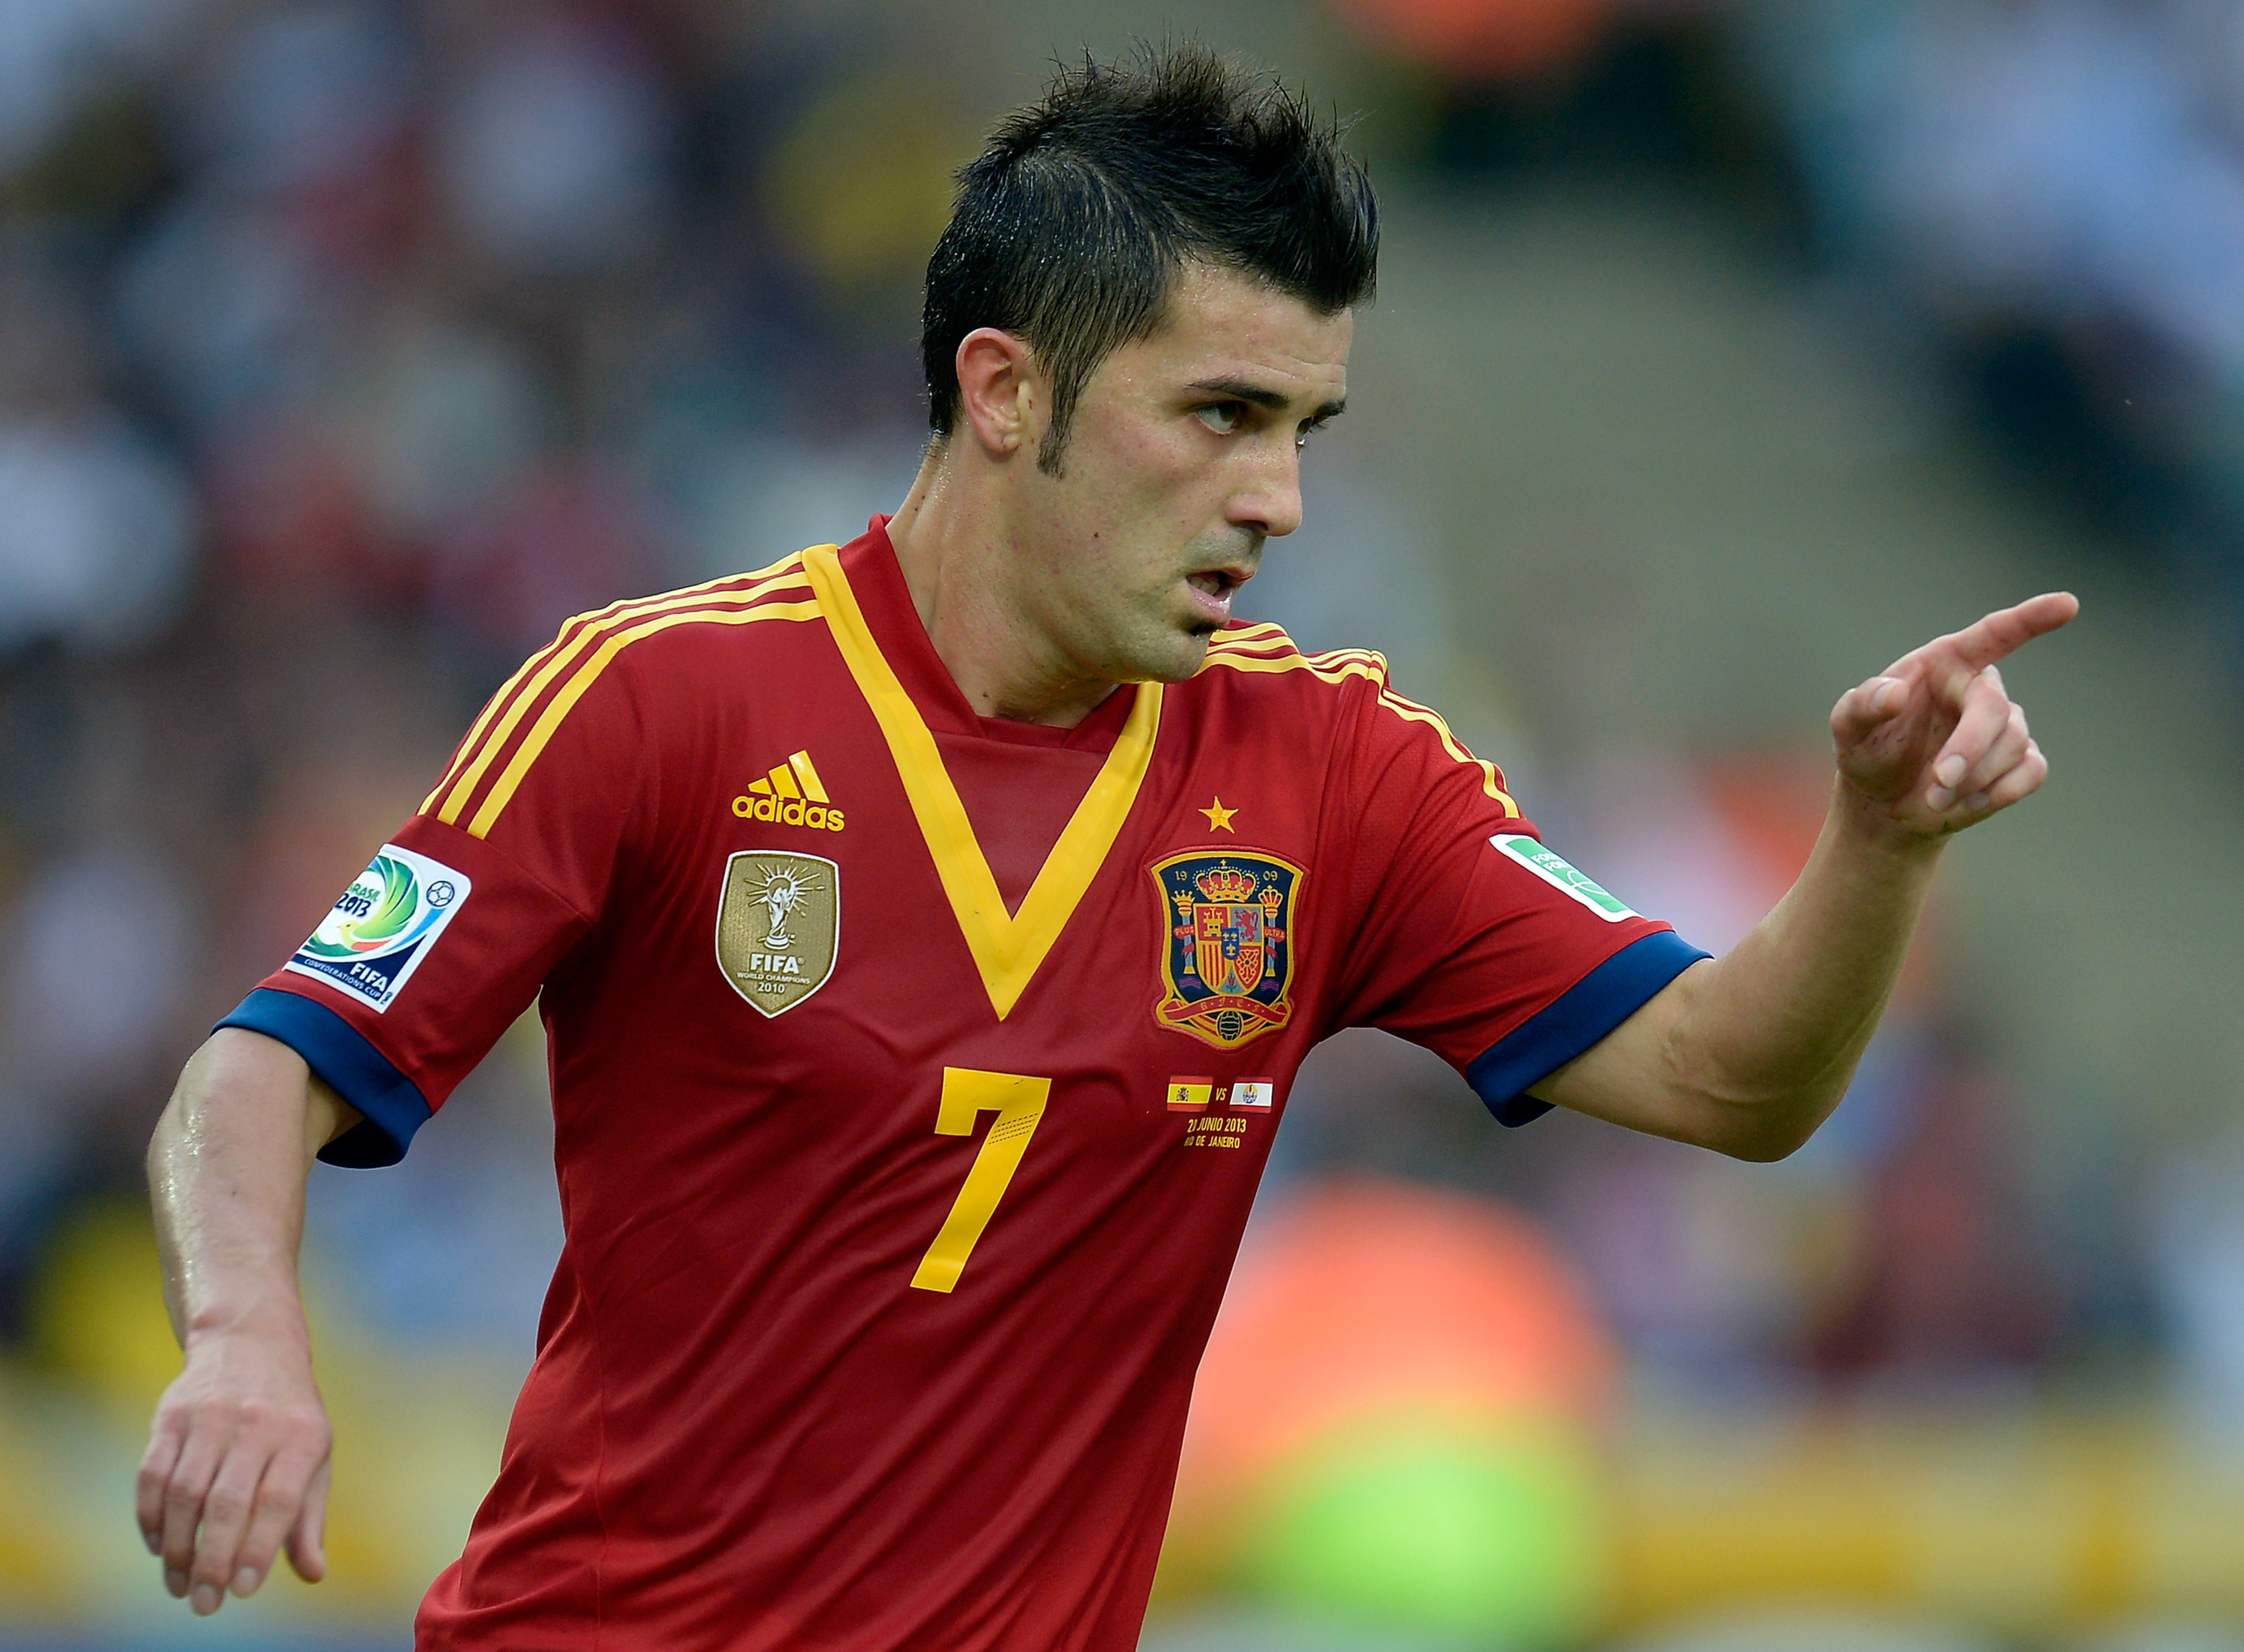 Spain vs. Tahiti, 2013 Confederations Cup: Final score 10-0, which is really unfortunate